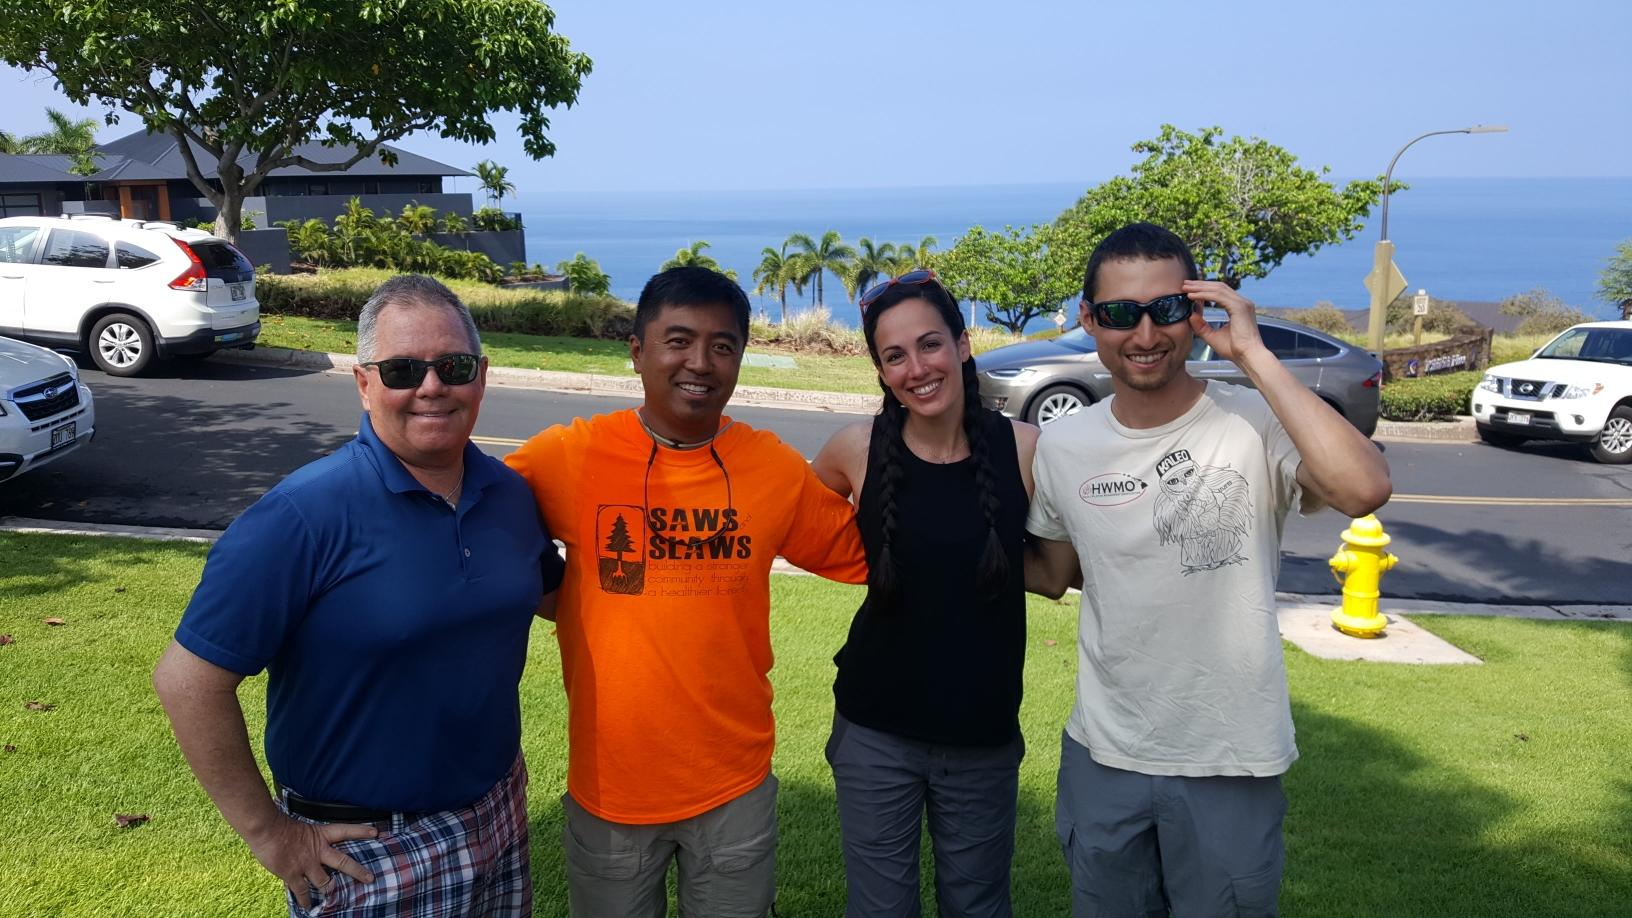 Mahalo (left to right) Tom Welle of NFPA, Cesar Gellido of Saws & Slaws, and Emily Troisi of FAC Learning Network, for coming out to support Kohala Waterfront's efforts!